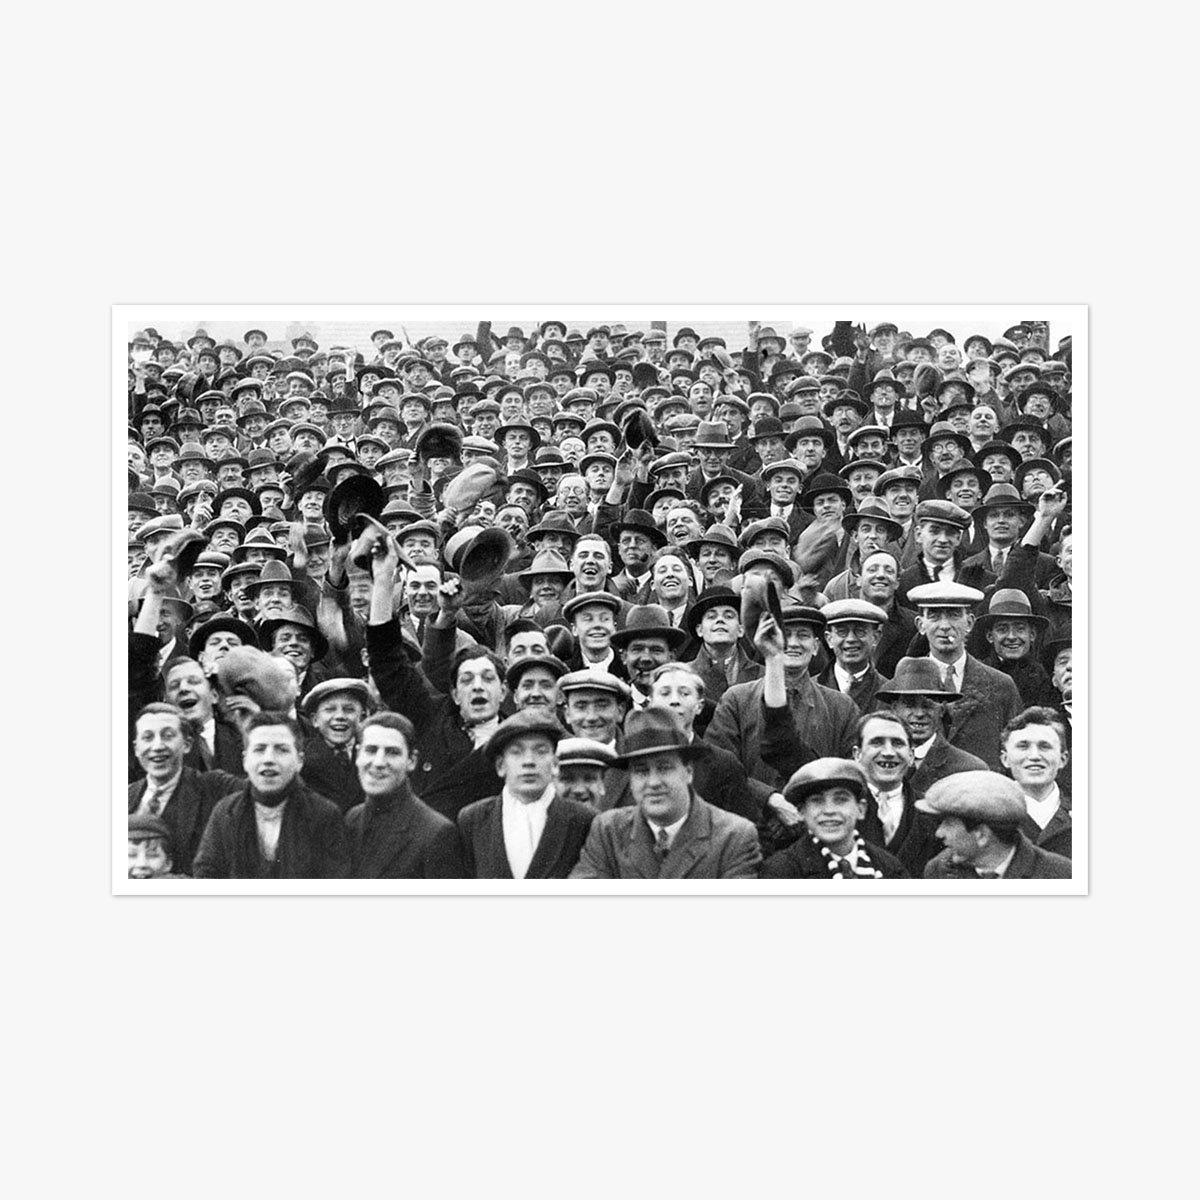 Football Fans 1930 by Frank Rust